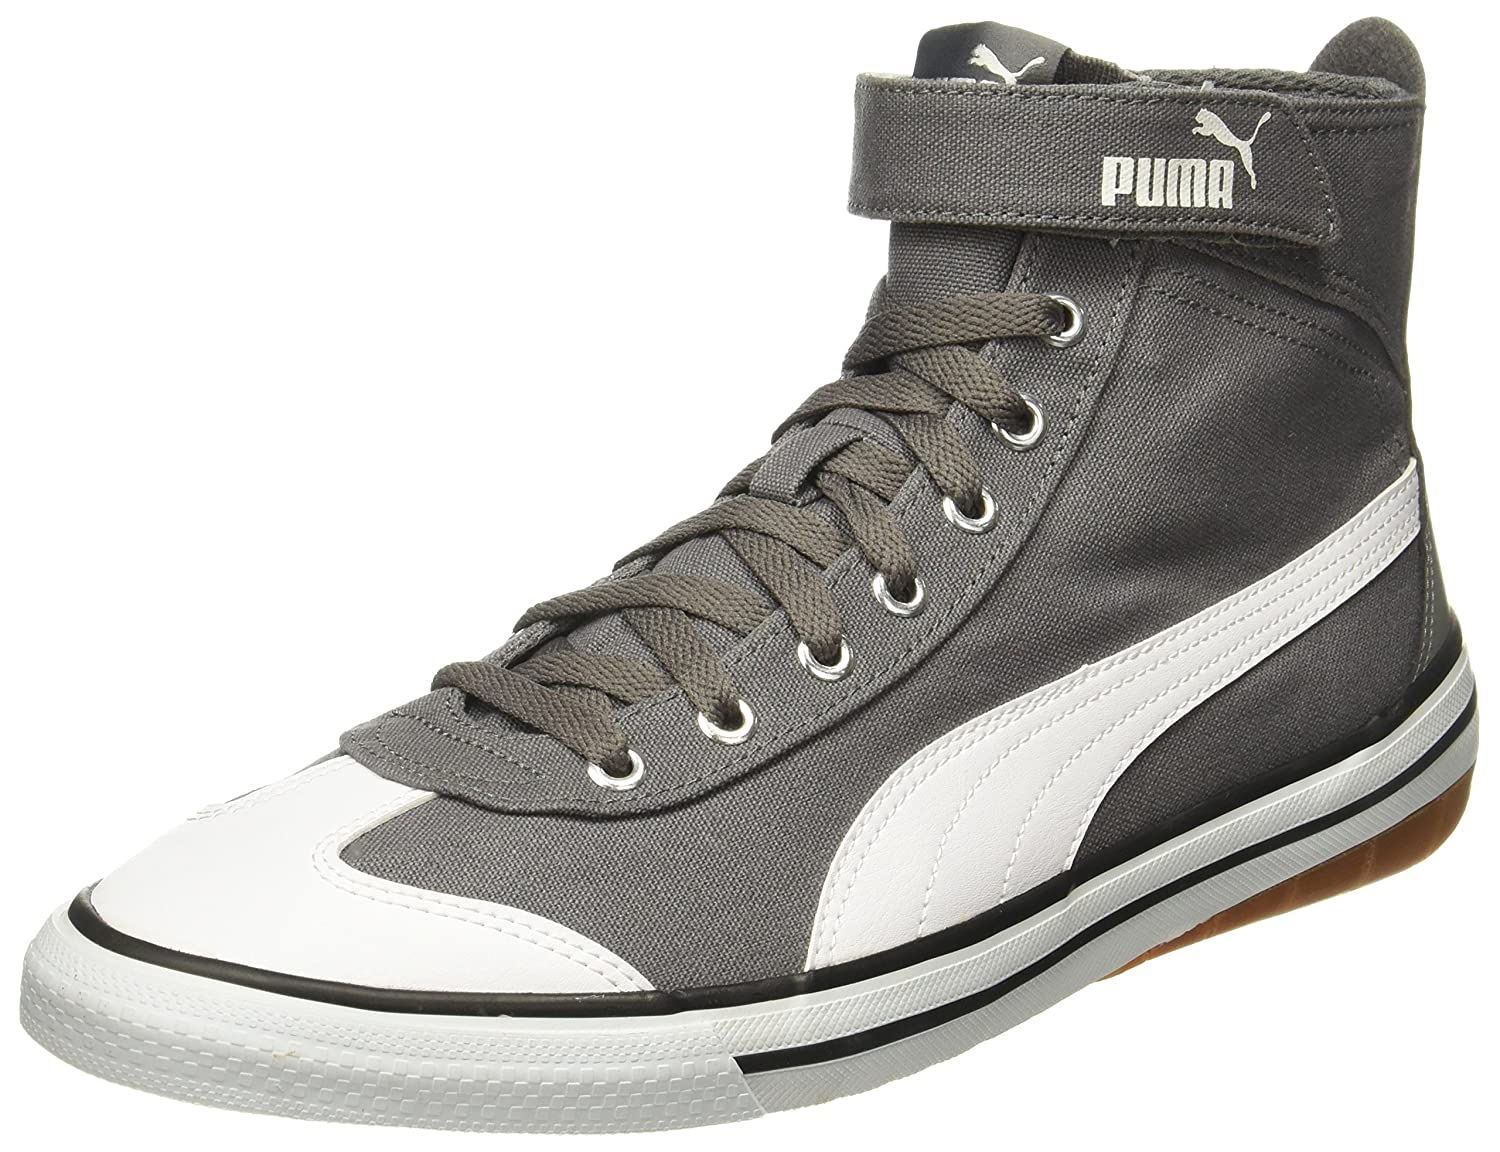 4adcdfbeca55 Puma Unisex 917 Fun Mid Idp Quiet Shade-Black Sneakers - 8 UK India (42  EU)  Buy Online at Low Prices in India - Amazon.in